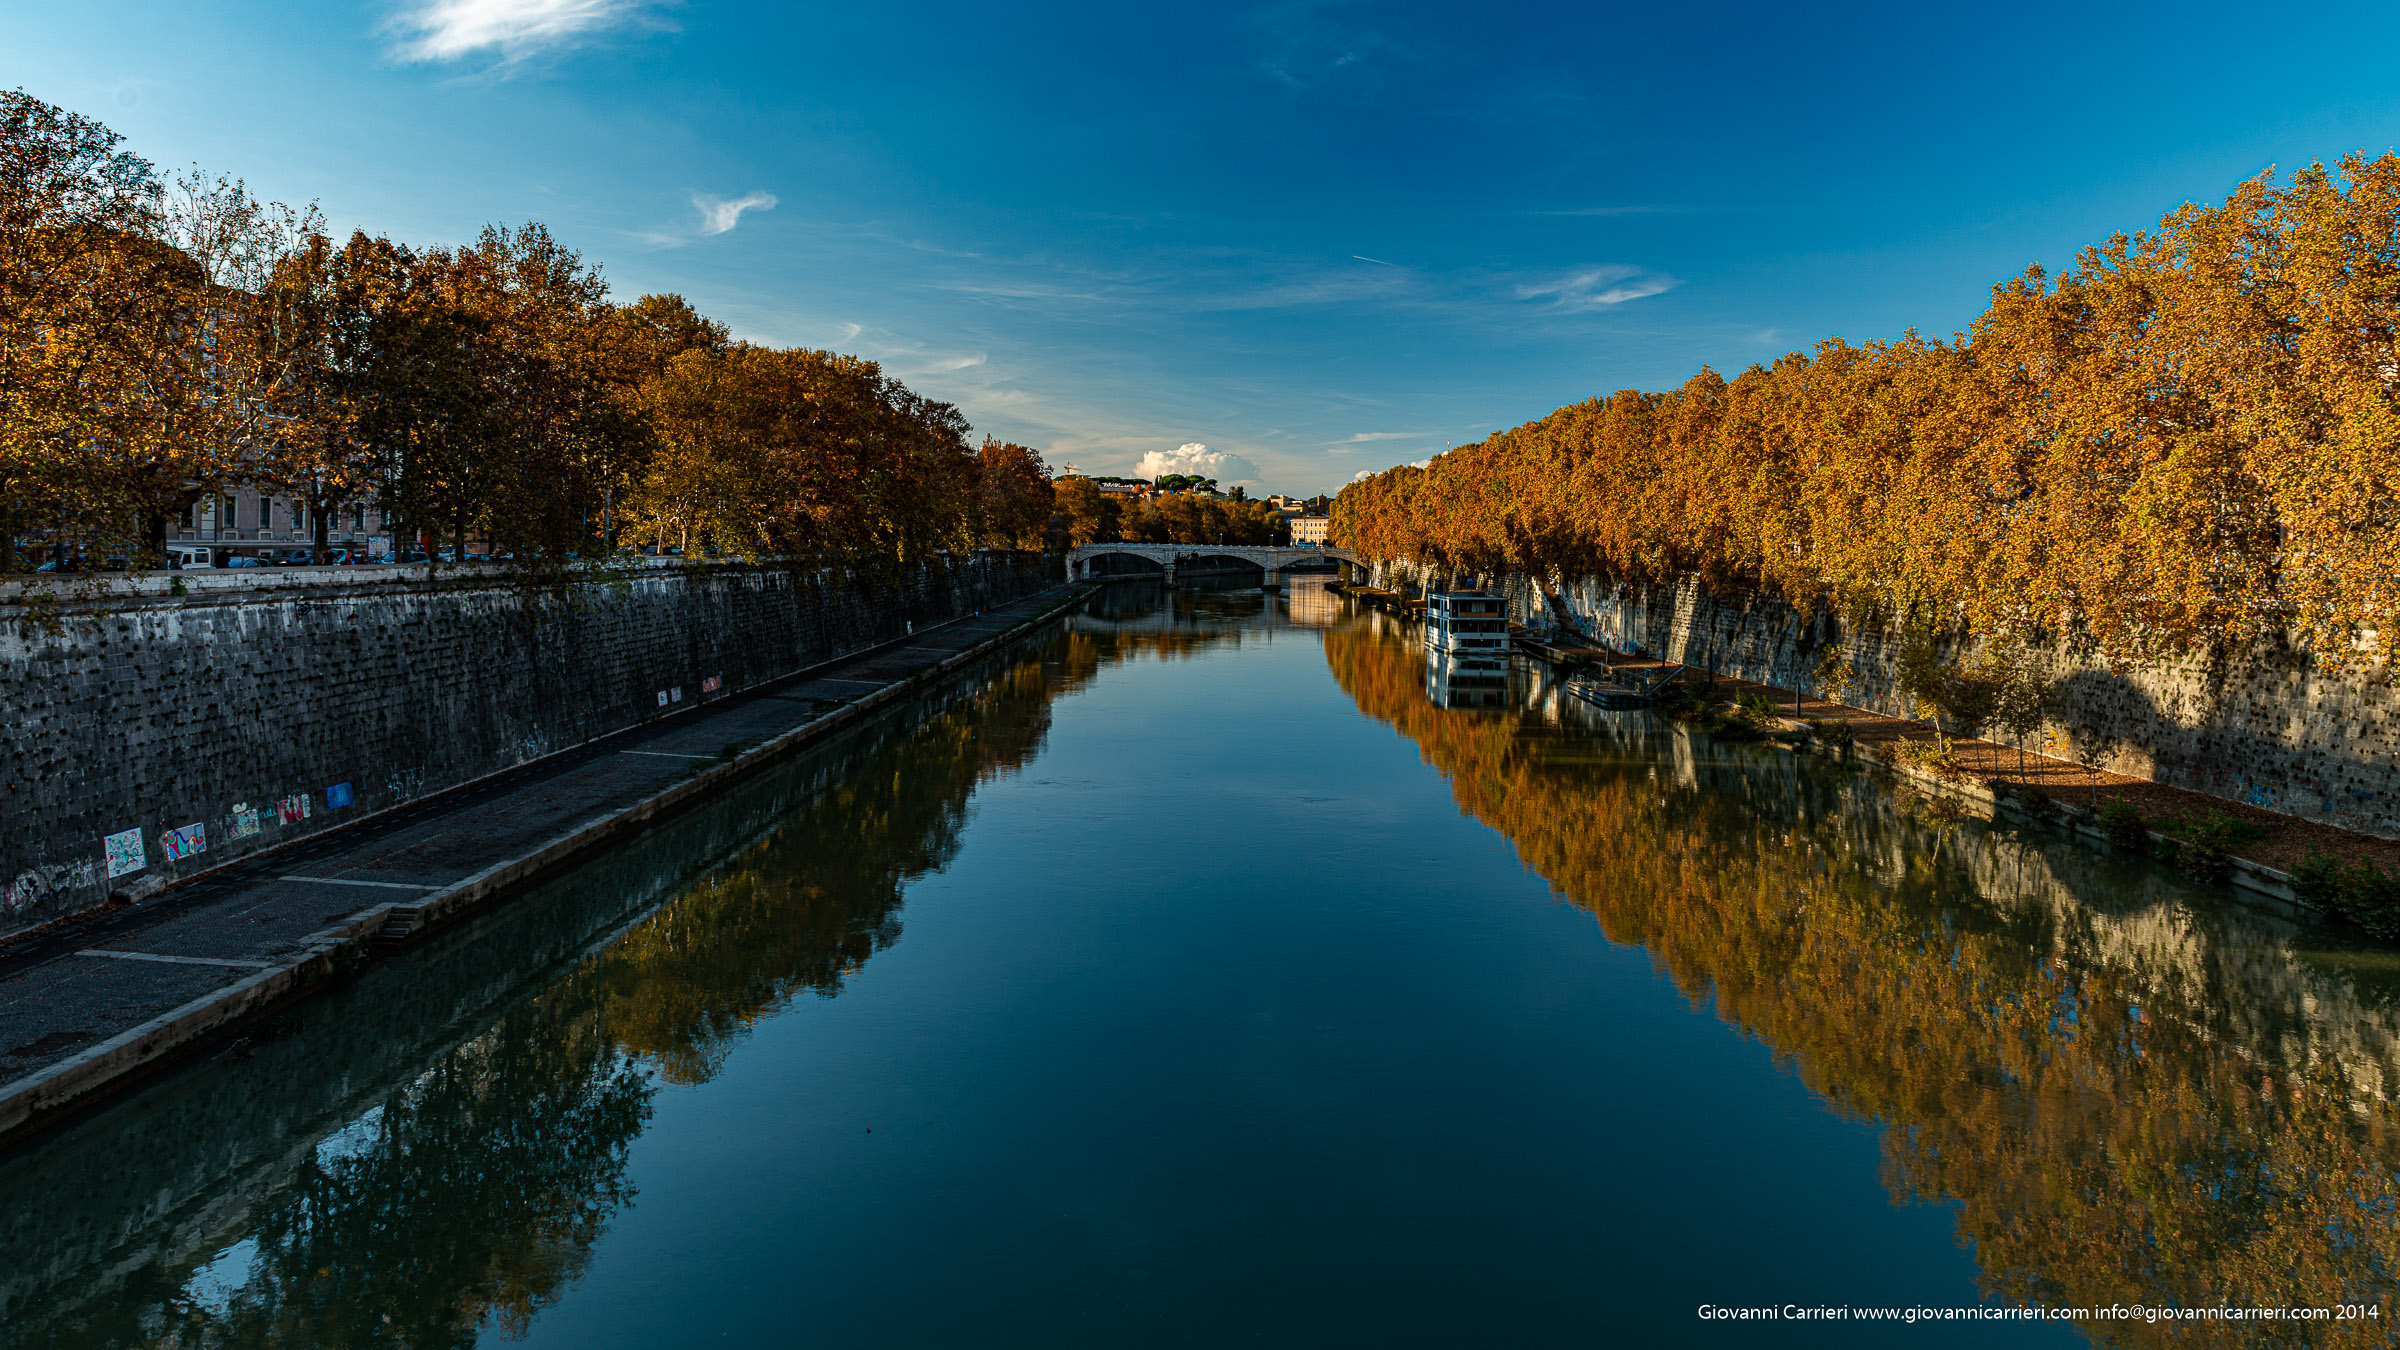 The Tevere river at sunset